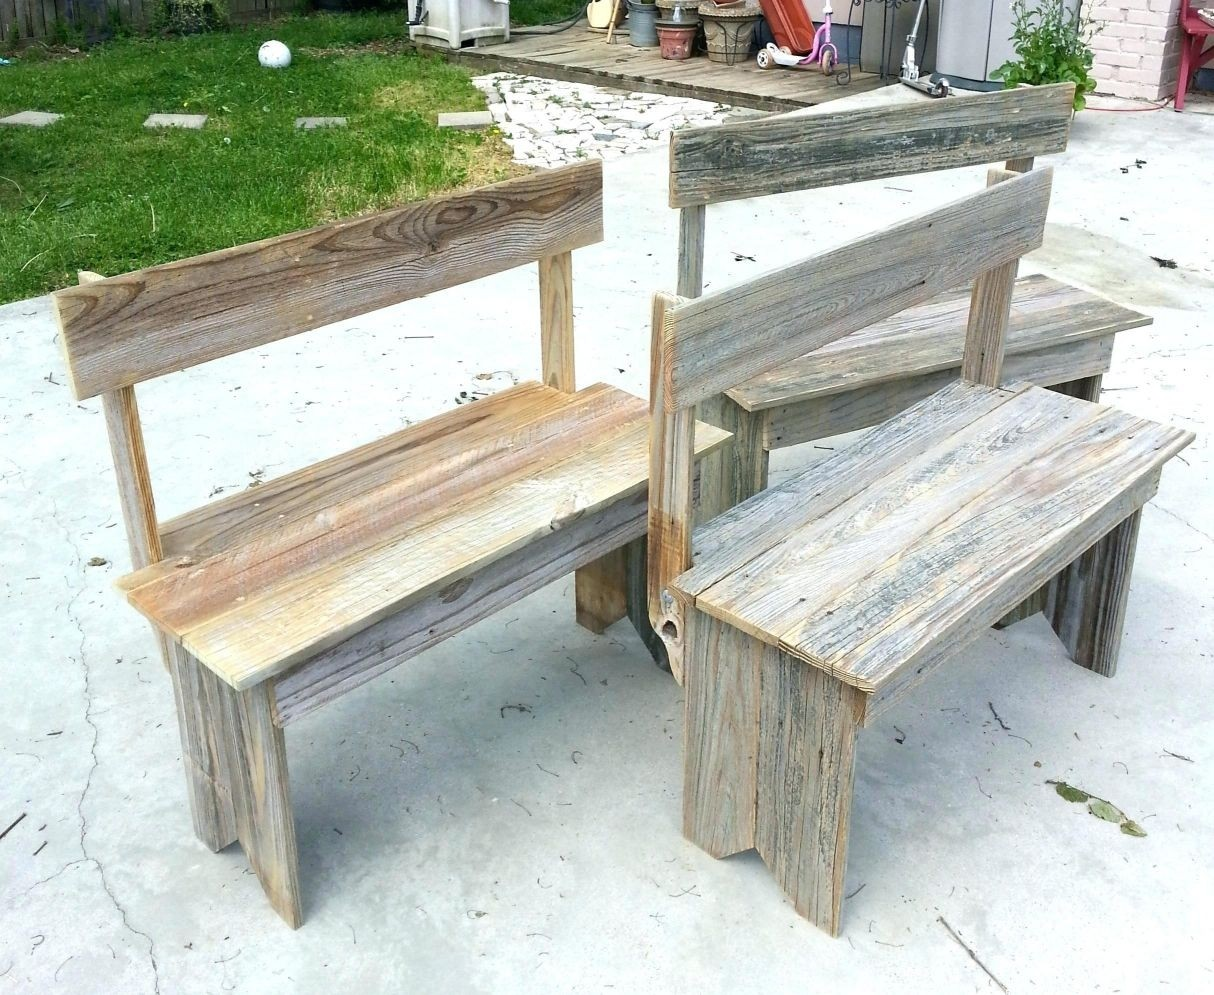 Rustic bench with back rest